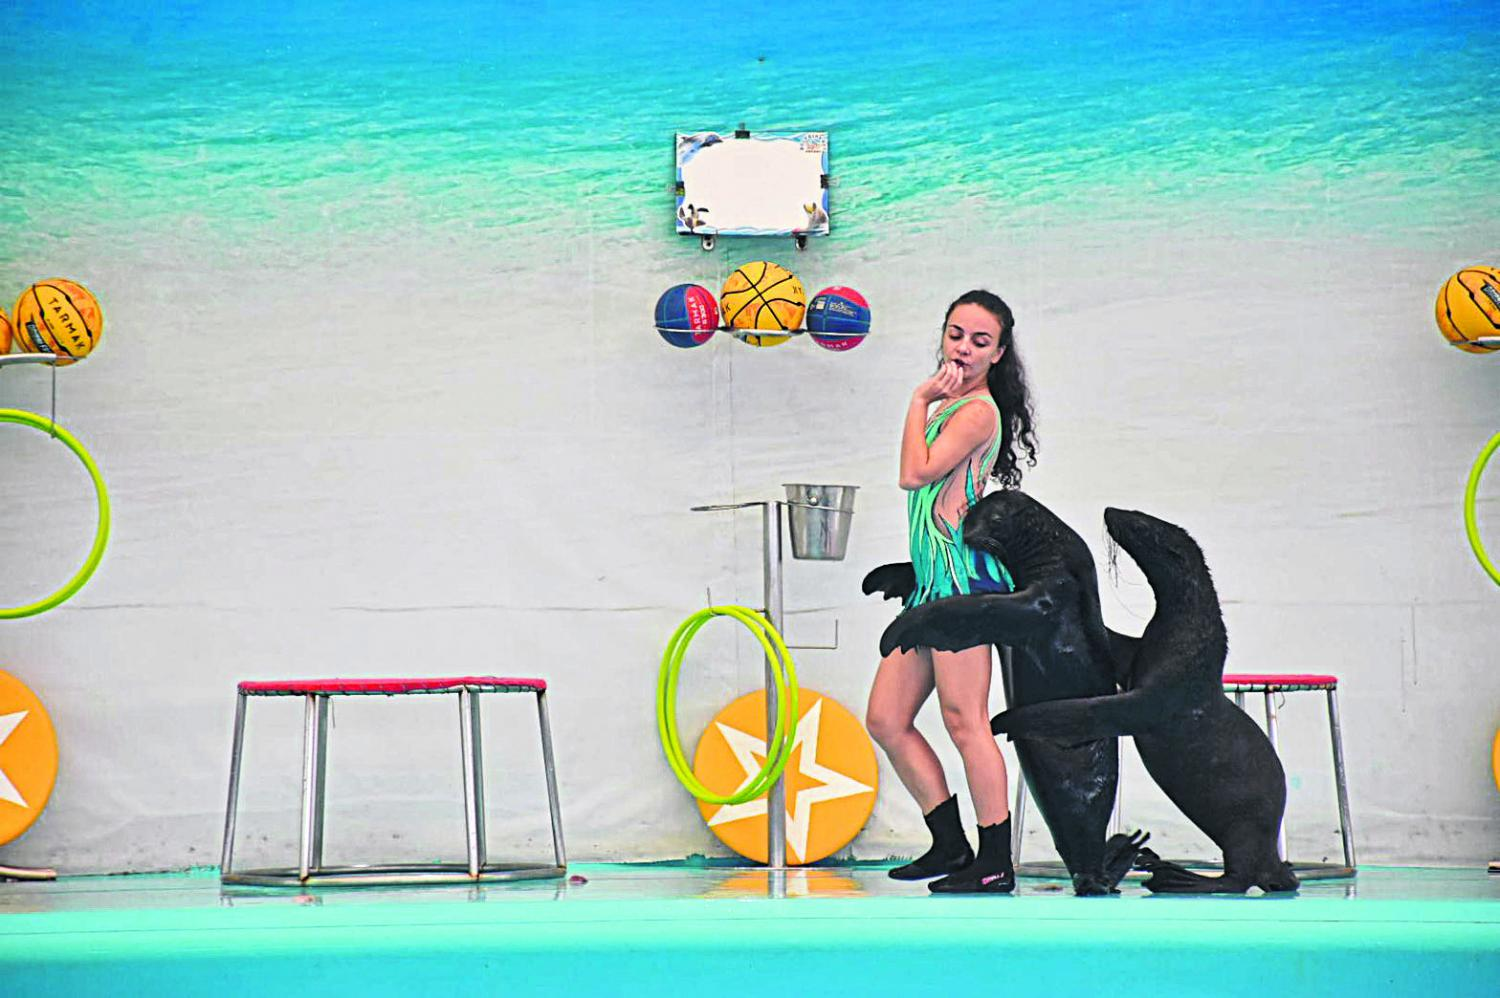 See Phuket's dolphins spring into action